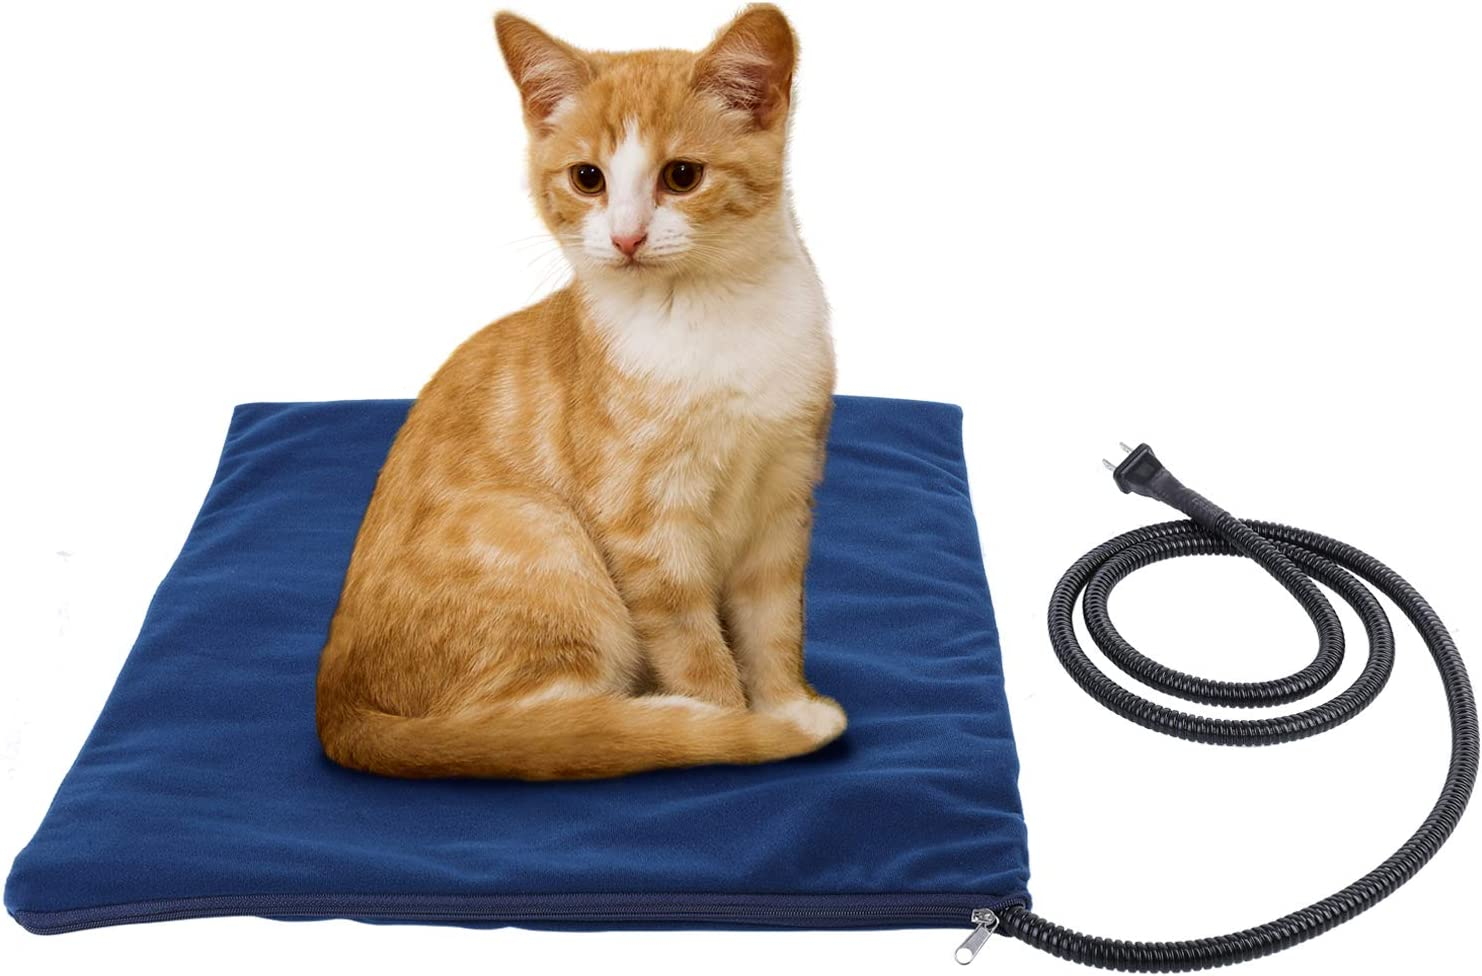 Deckey Pet Heating Pad, Indoor Waterproof Electric Heating Pads, Overheat Protection, Chew Resistant, Convenient Cleaning for Dogs and Cats